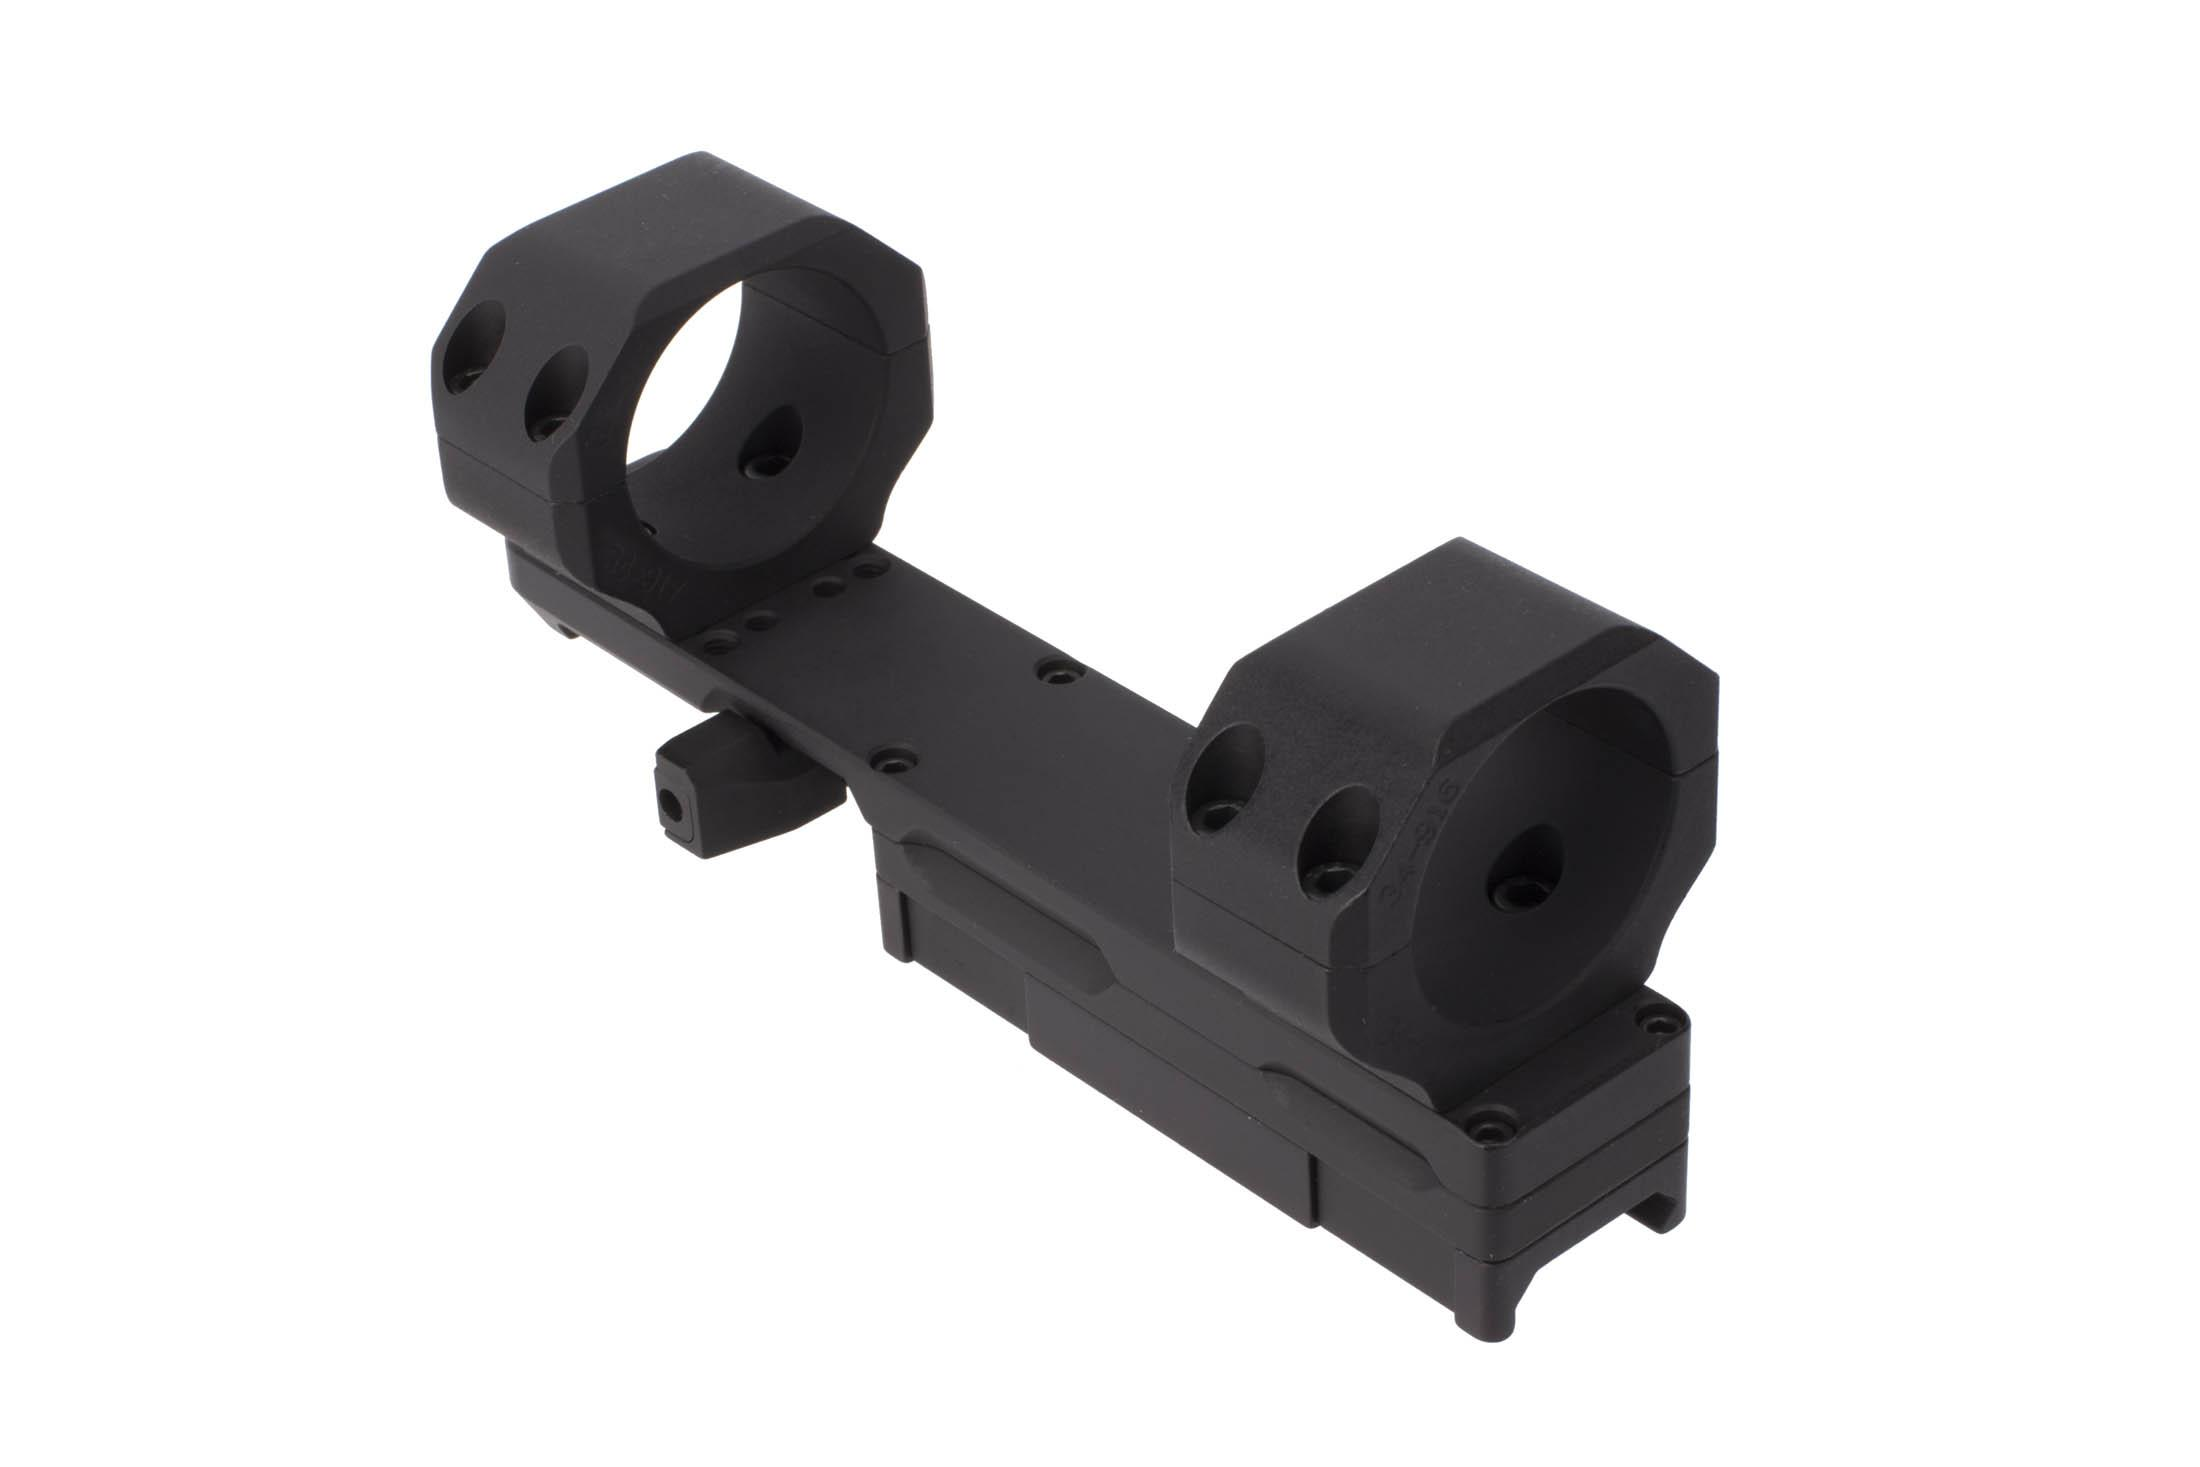 Kinetic Development Group 34mm SIDELOK Modular Optic Mount is precision wire EDM cut and CNC machined for concentricity